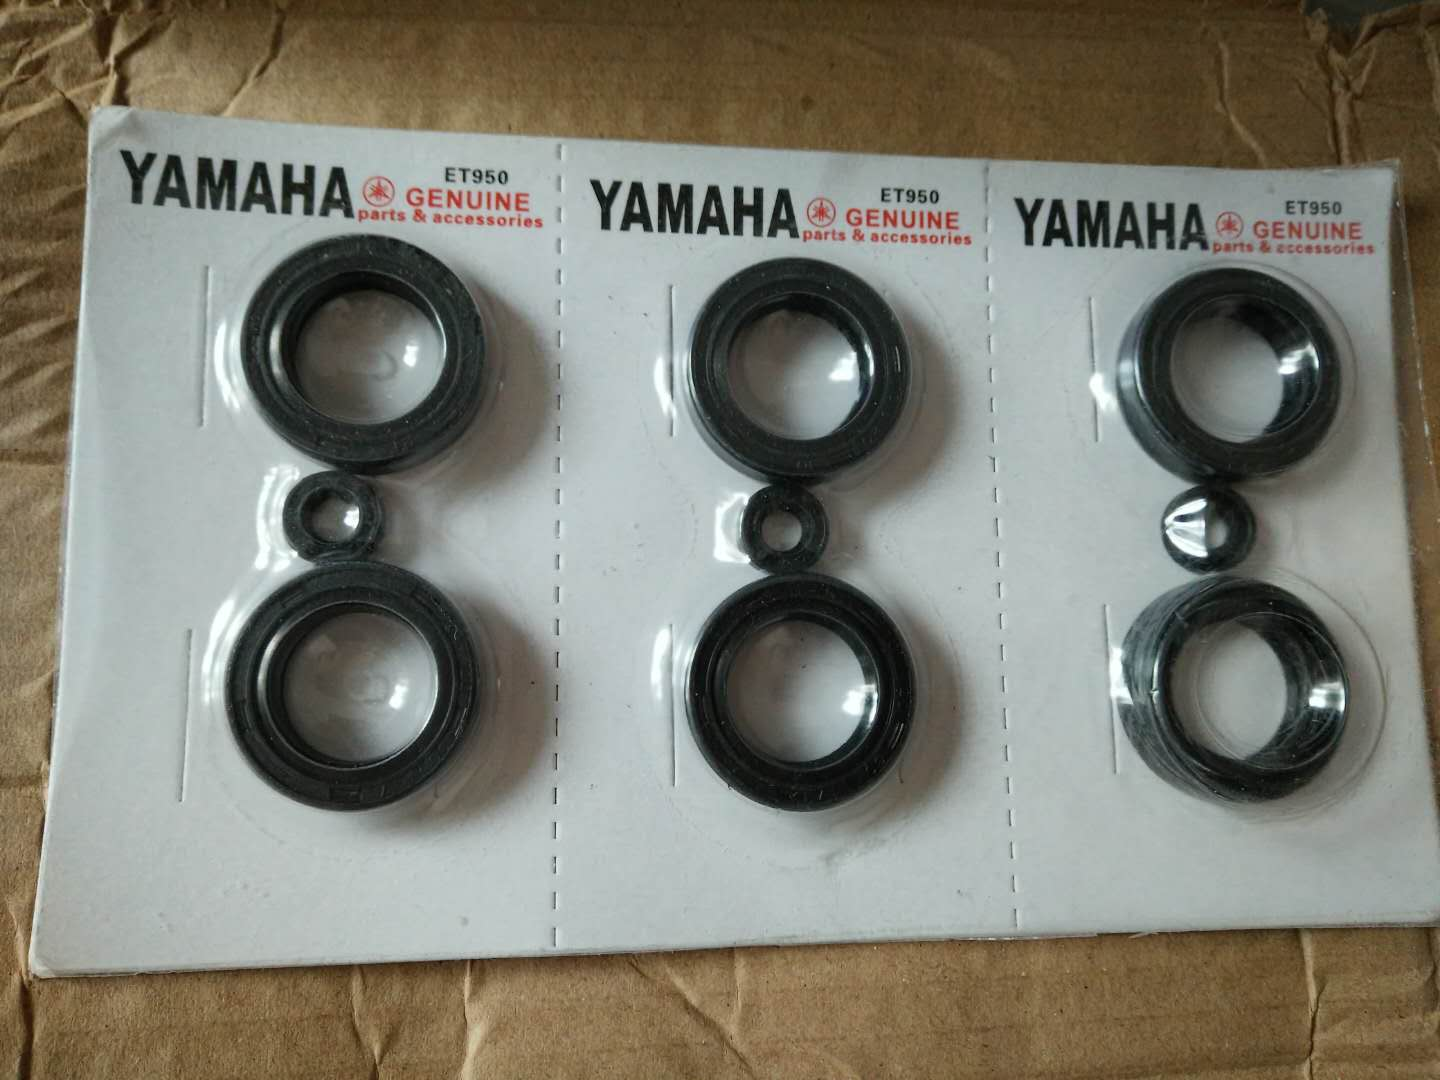 et950 oil seal(3 set in one card)/ Yamaha card / generator parts